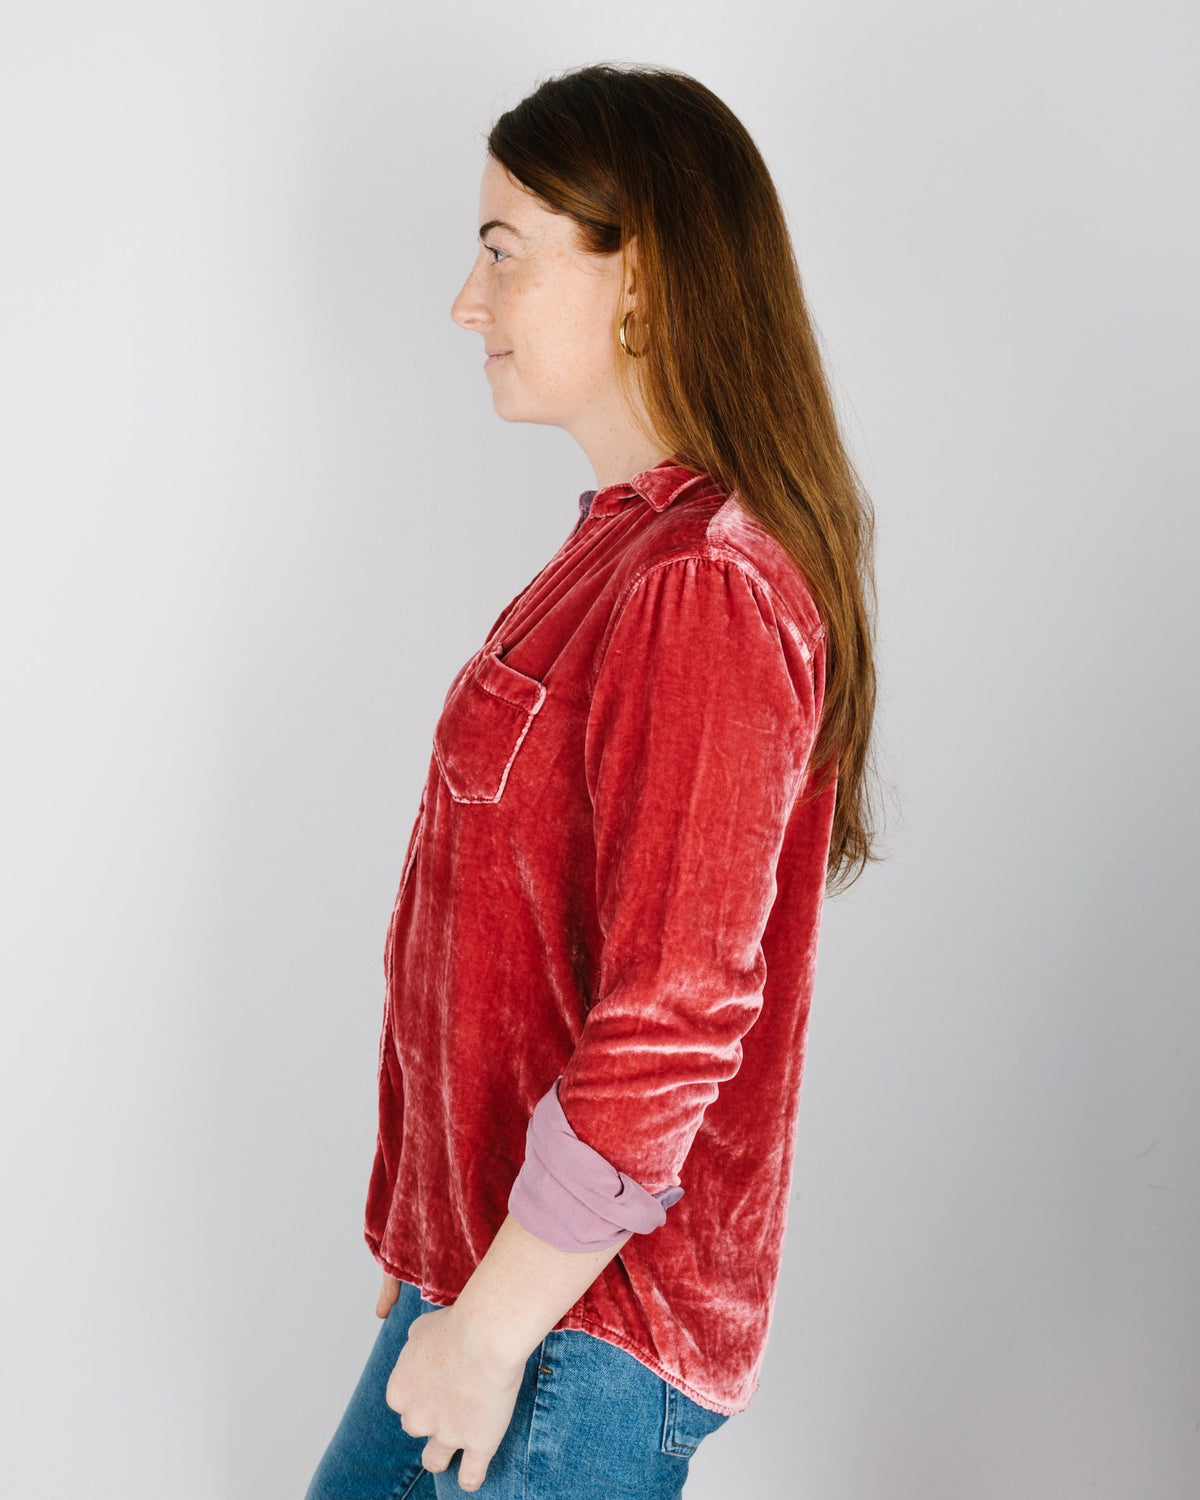 CP Shades Clothing Sloane Blouse in Rosewood Silk Velvet